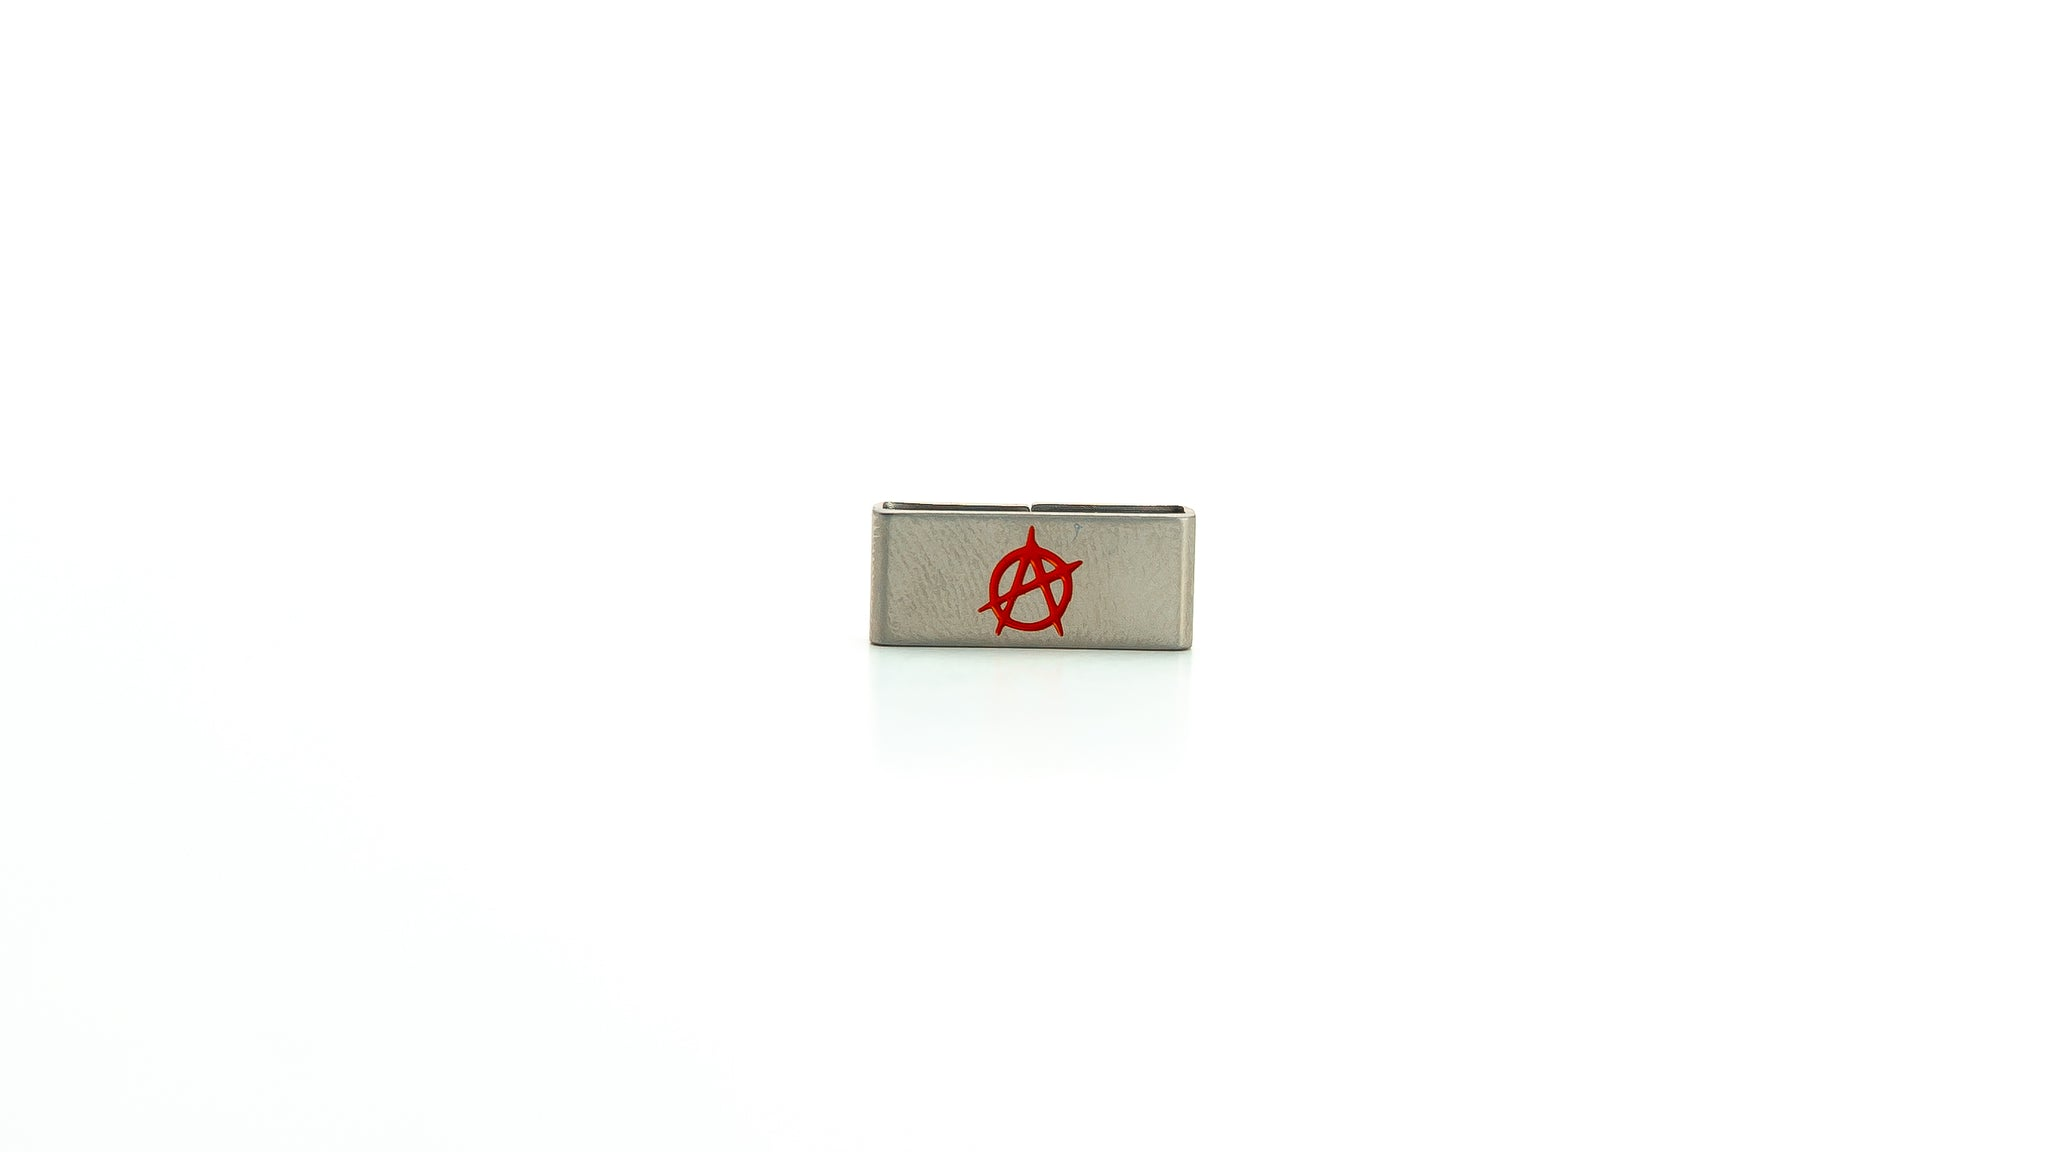 Anarchy stainless steel tag. Radtagz collectible charms. Anarchist. Charm. Collectible. Teen Angst.